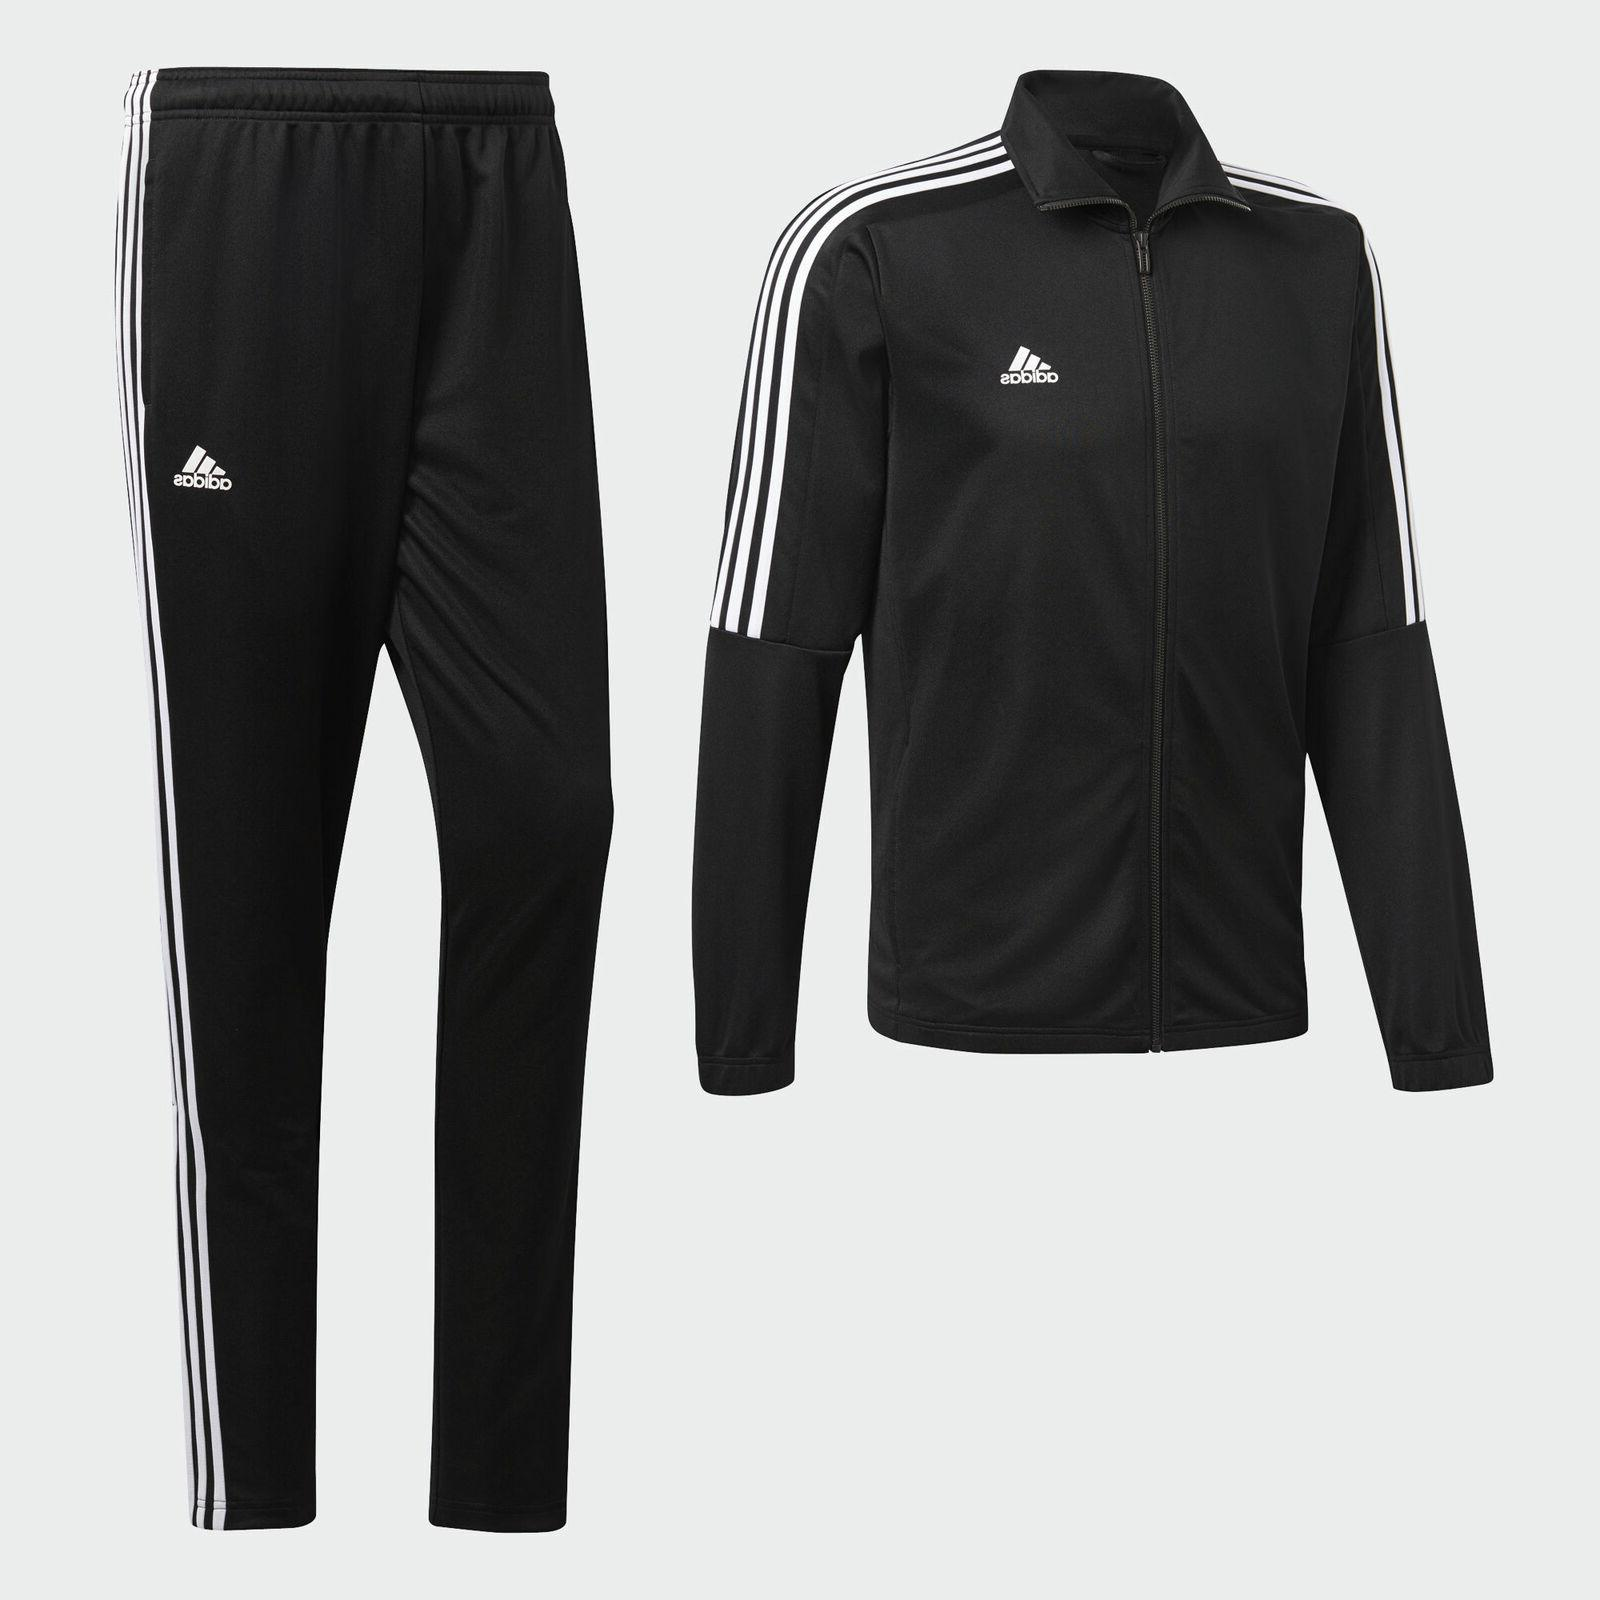 Adidas Tiro Jacket Black White 3 Men's